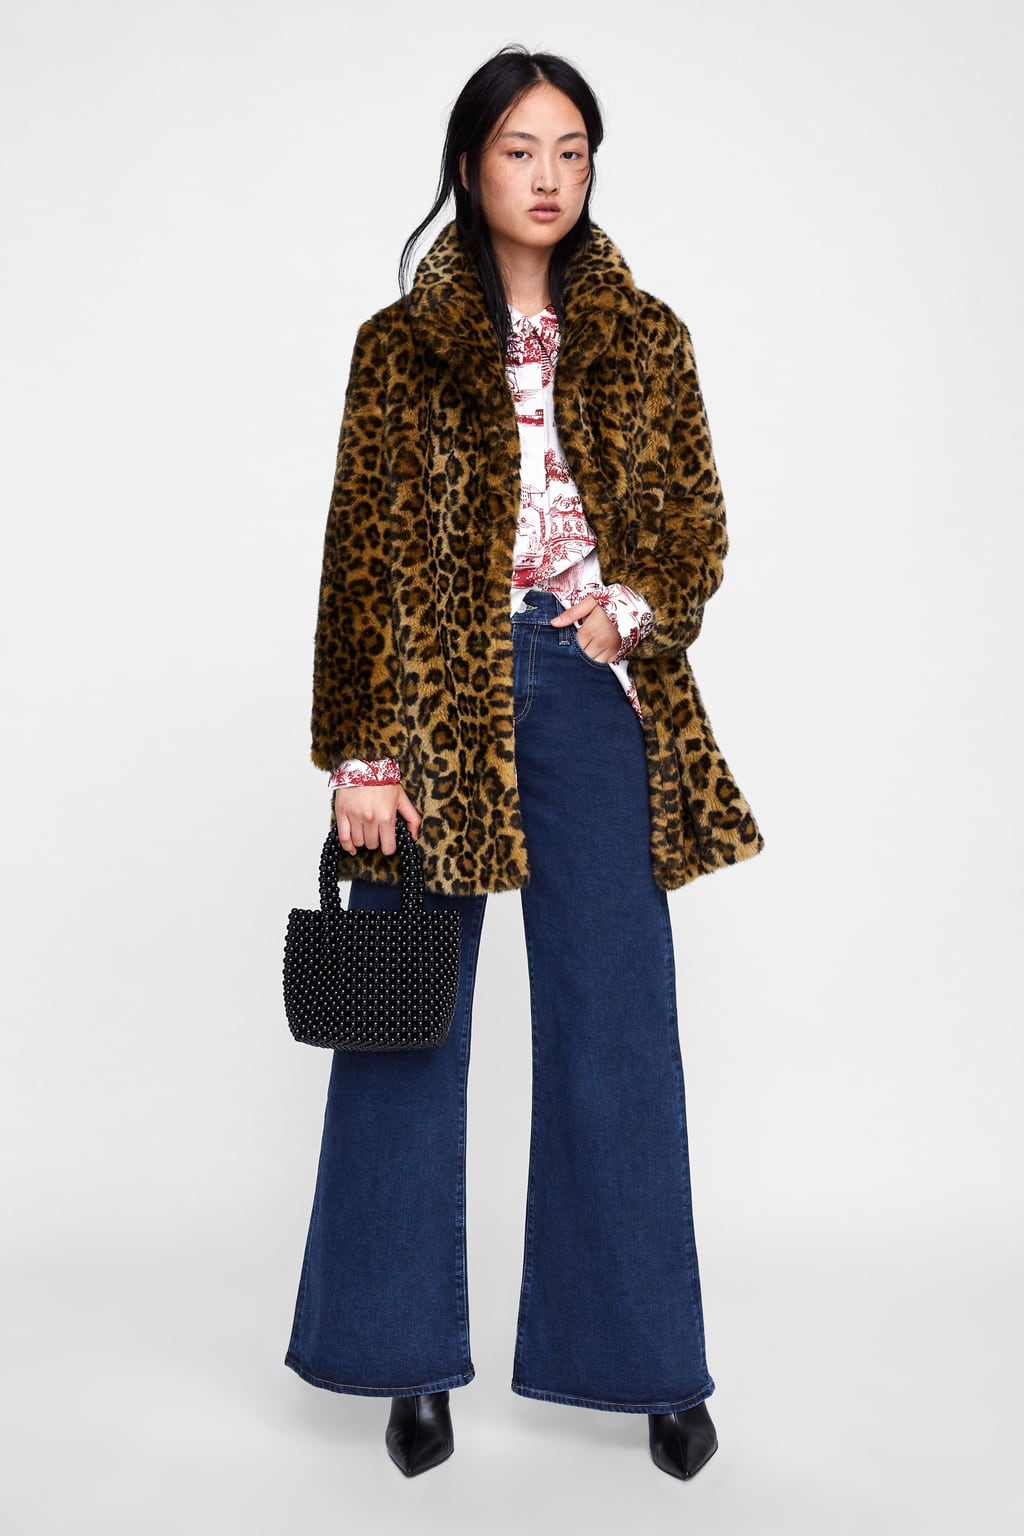 - If you have not heard, let me be the first to say that: animal print is the most popular trend in 2018.